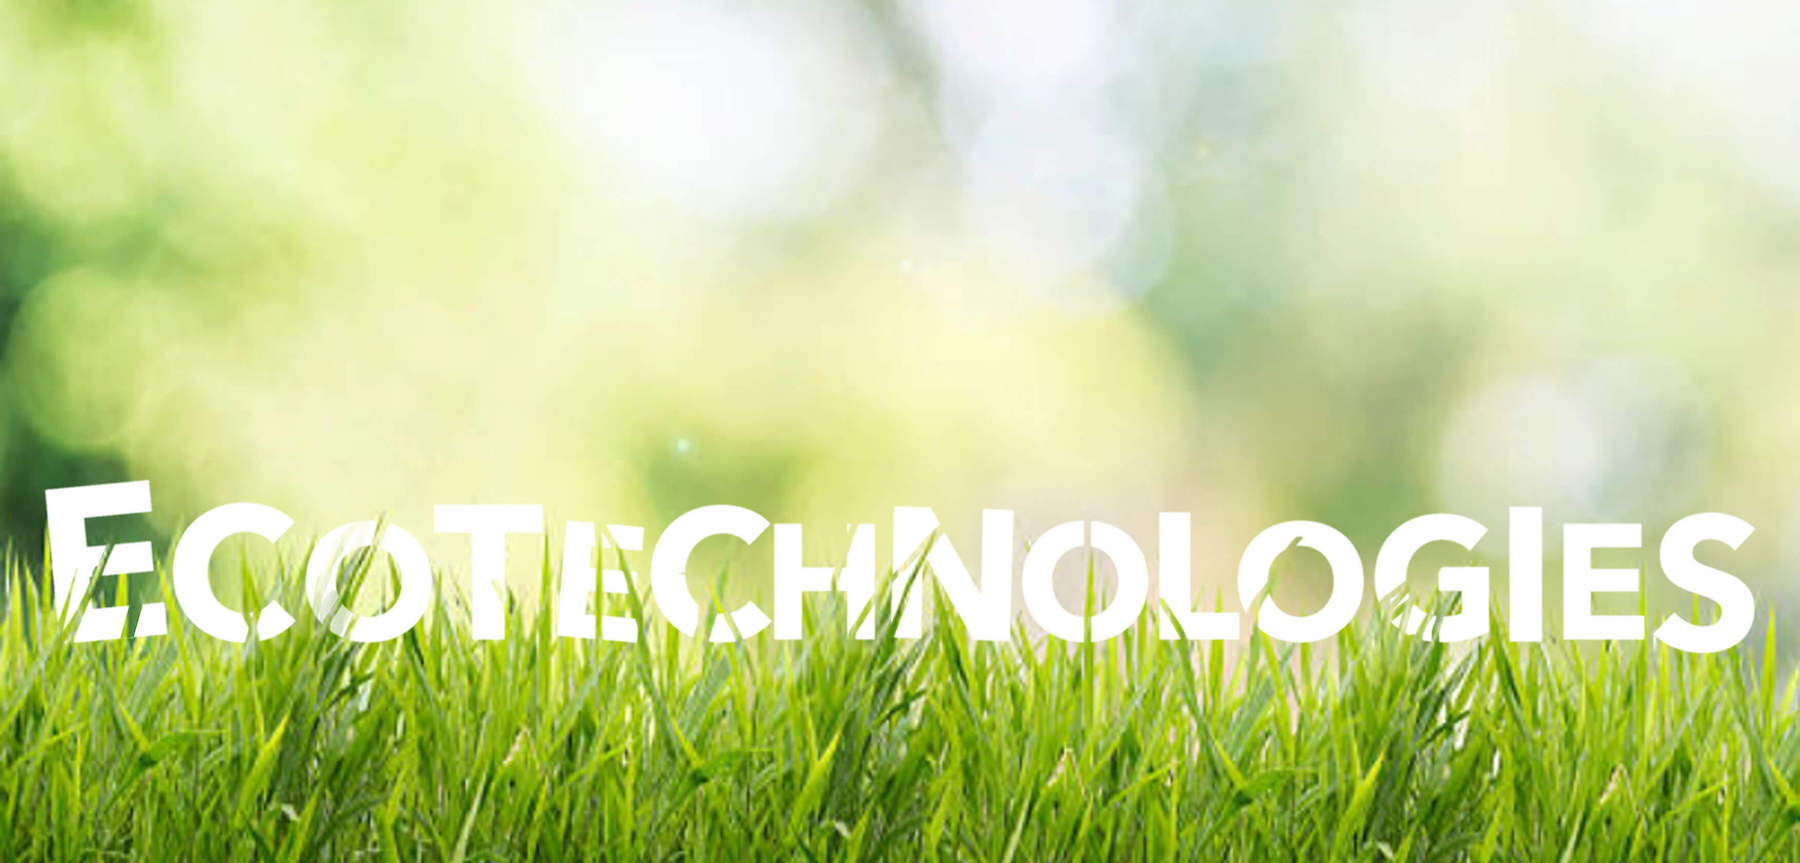 ecotechnologies: green technologies to support decarbonization of industry